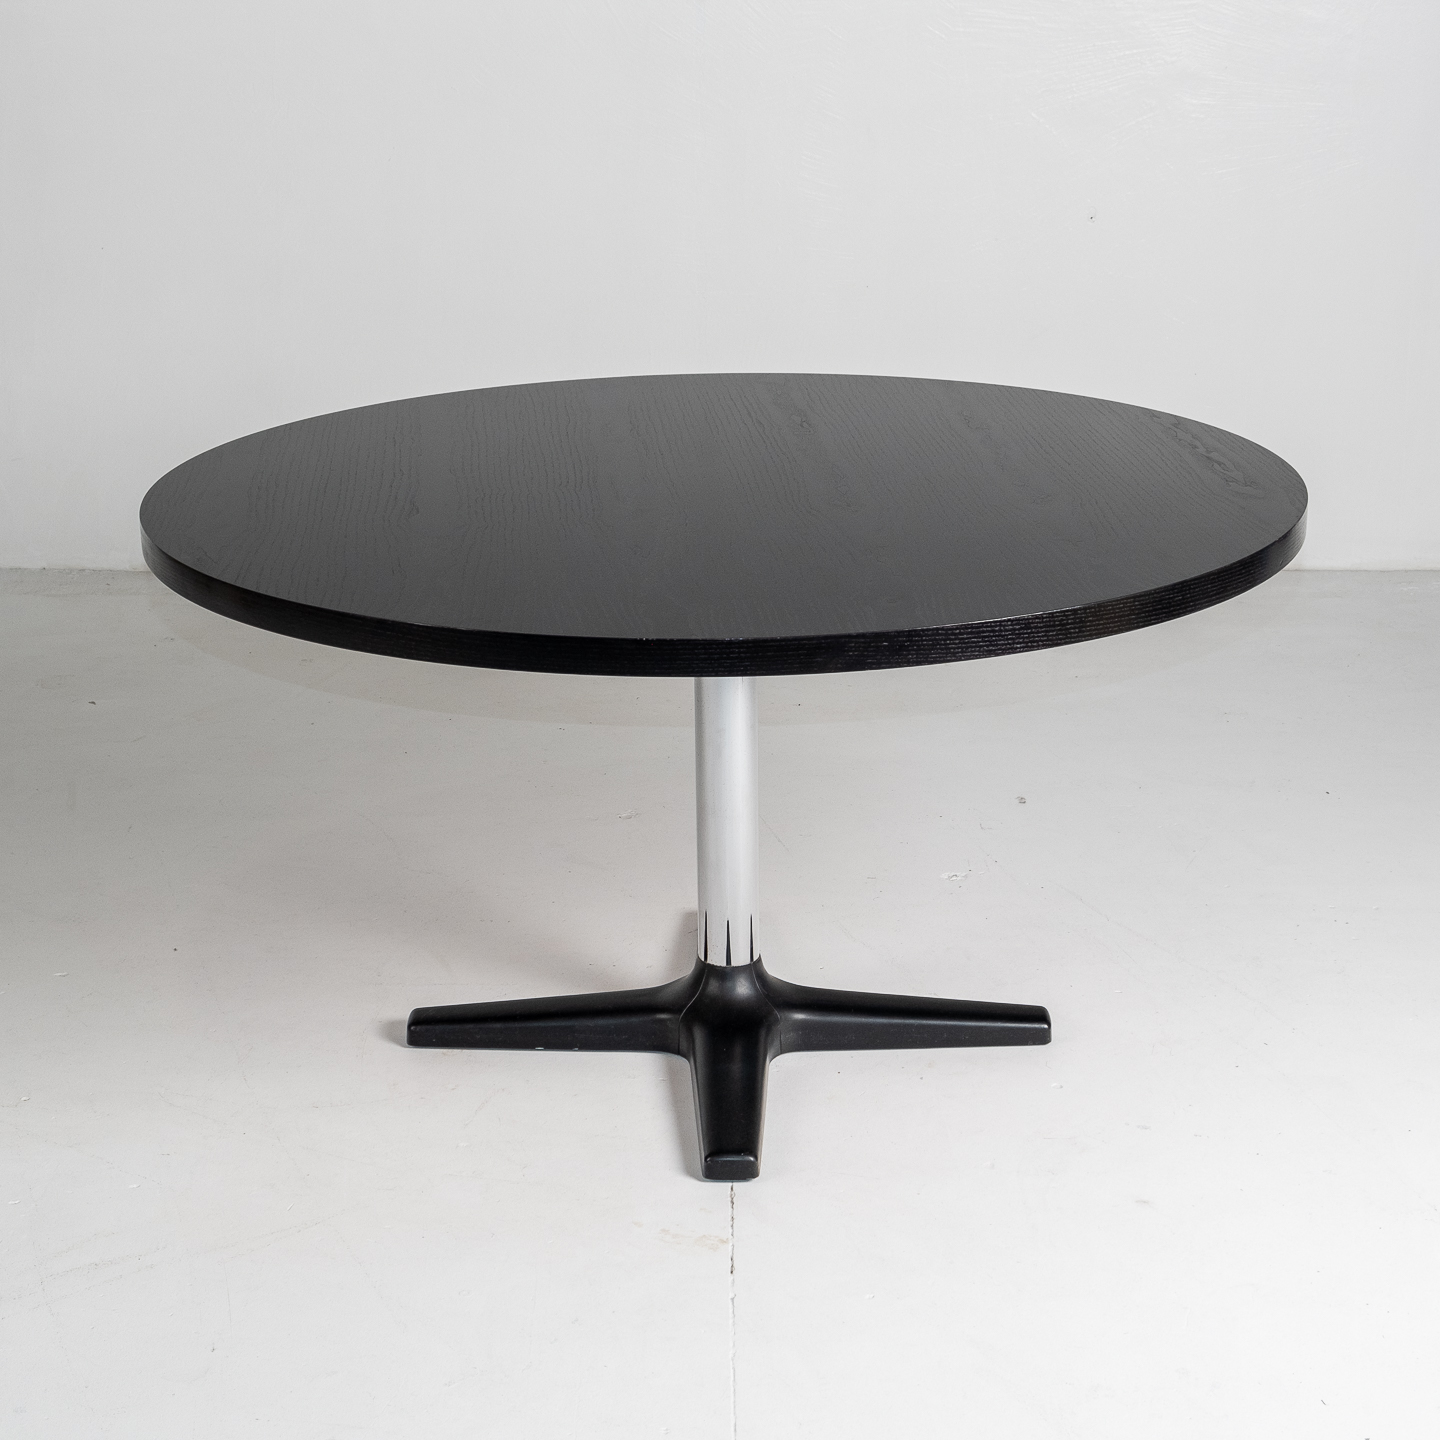 Round Dining Table For Pastoe With Chrome Pedestal Base And Painted Japanese Oak Top, 1960s, The Netherlands 1